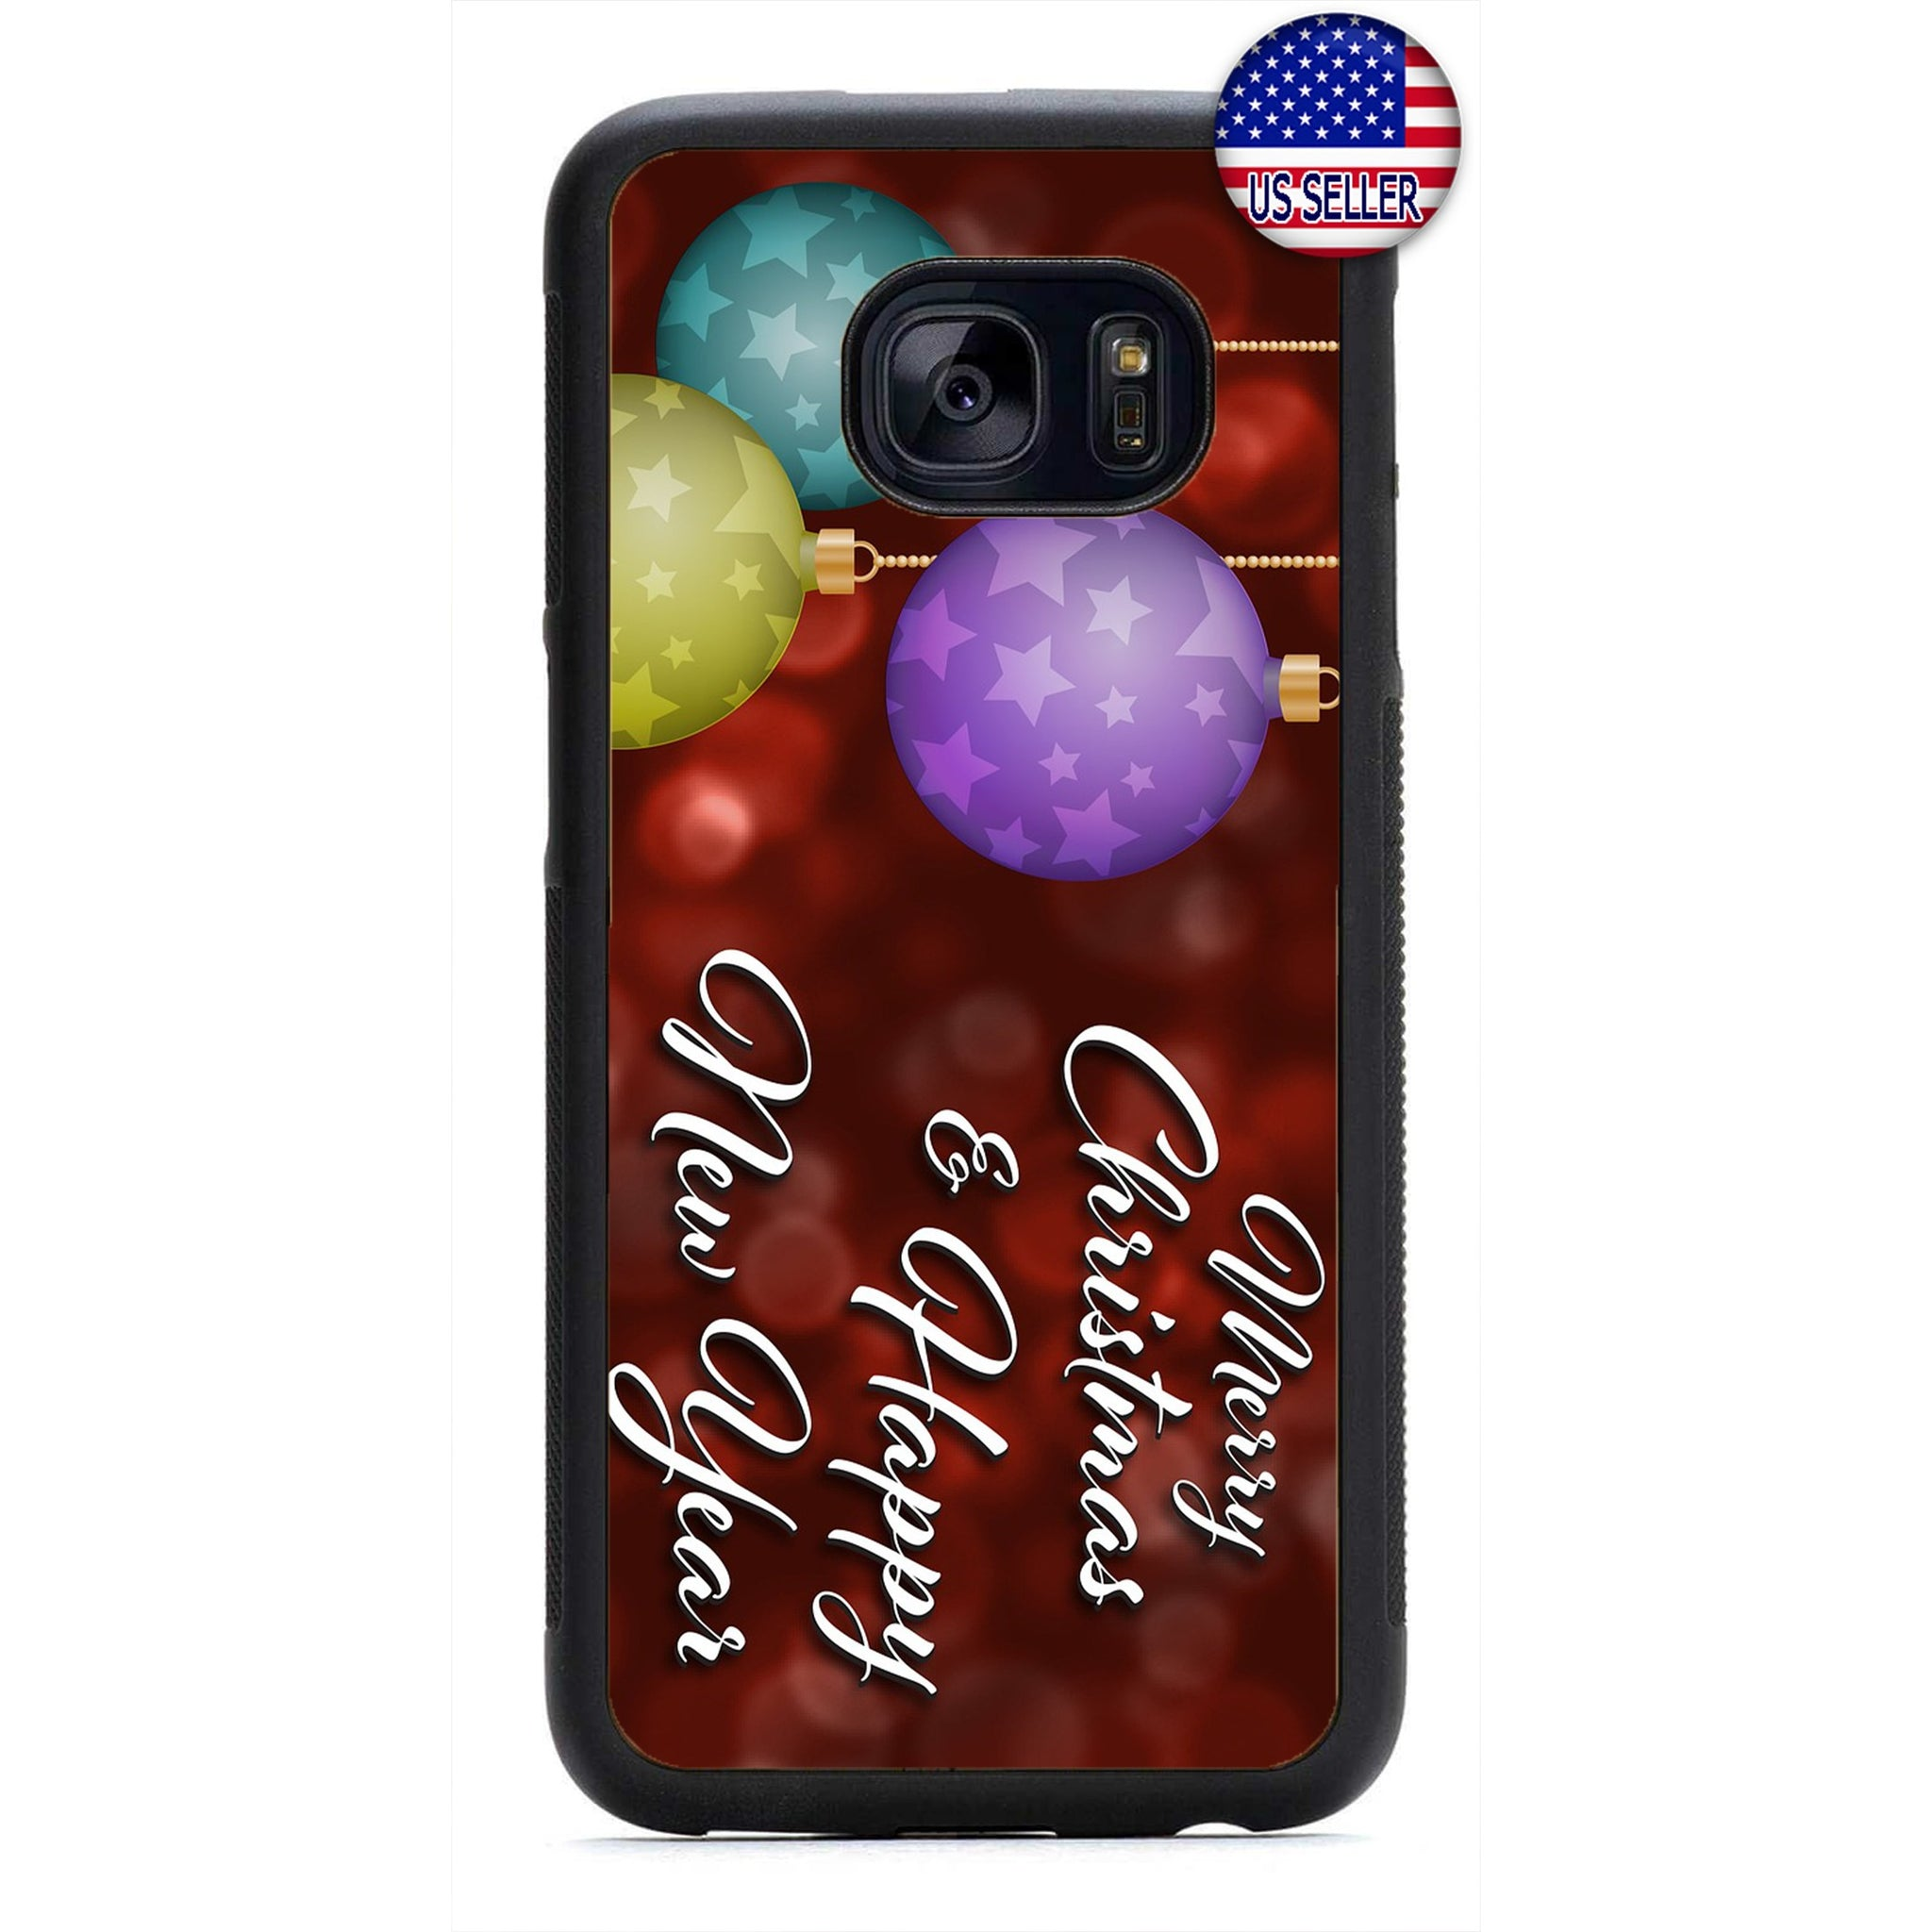 Merry Christmas New Year Holiday Rubber Case Cover For Samsung Galaxy Note